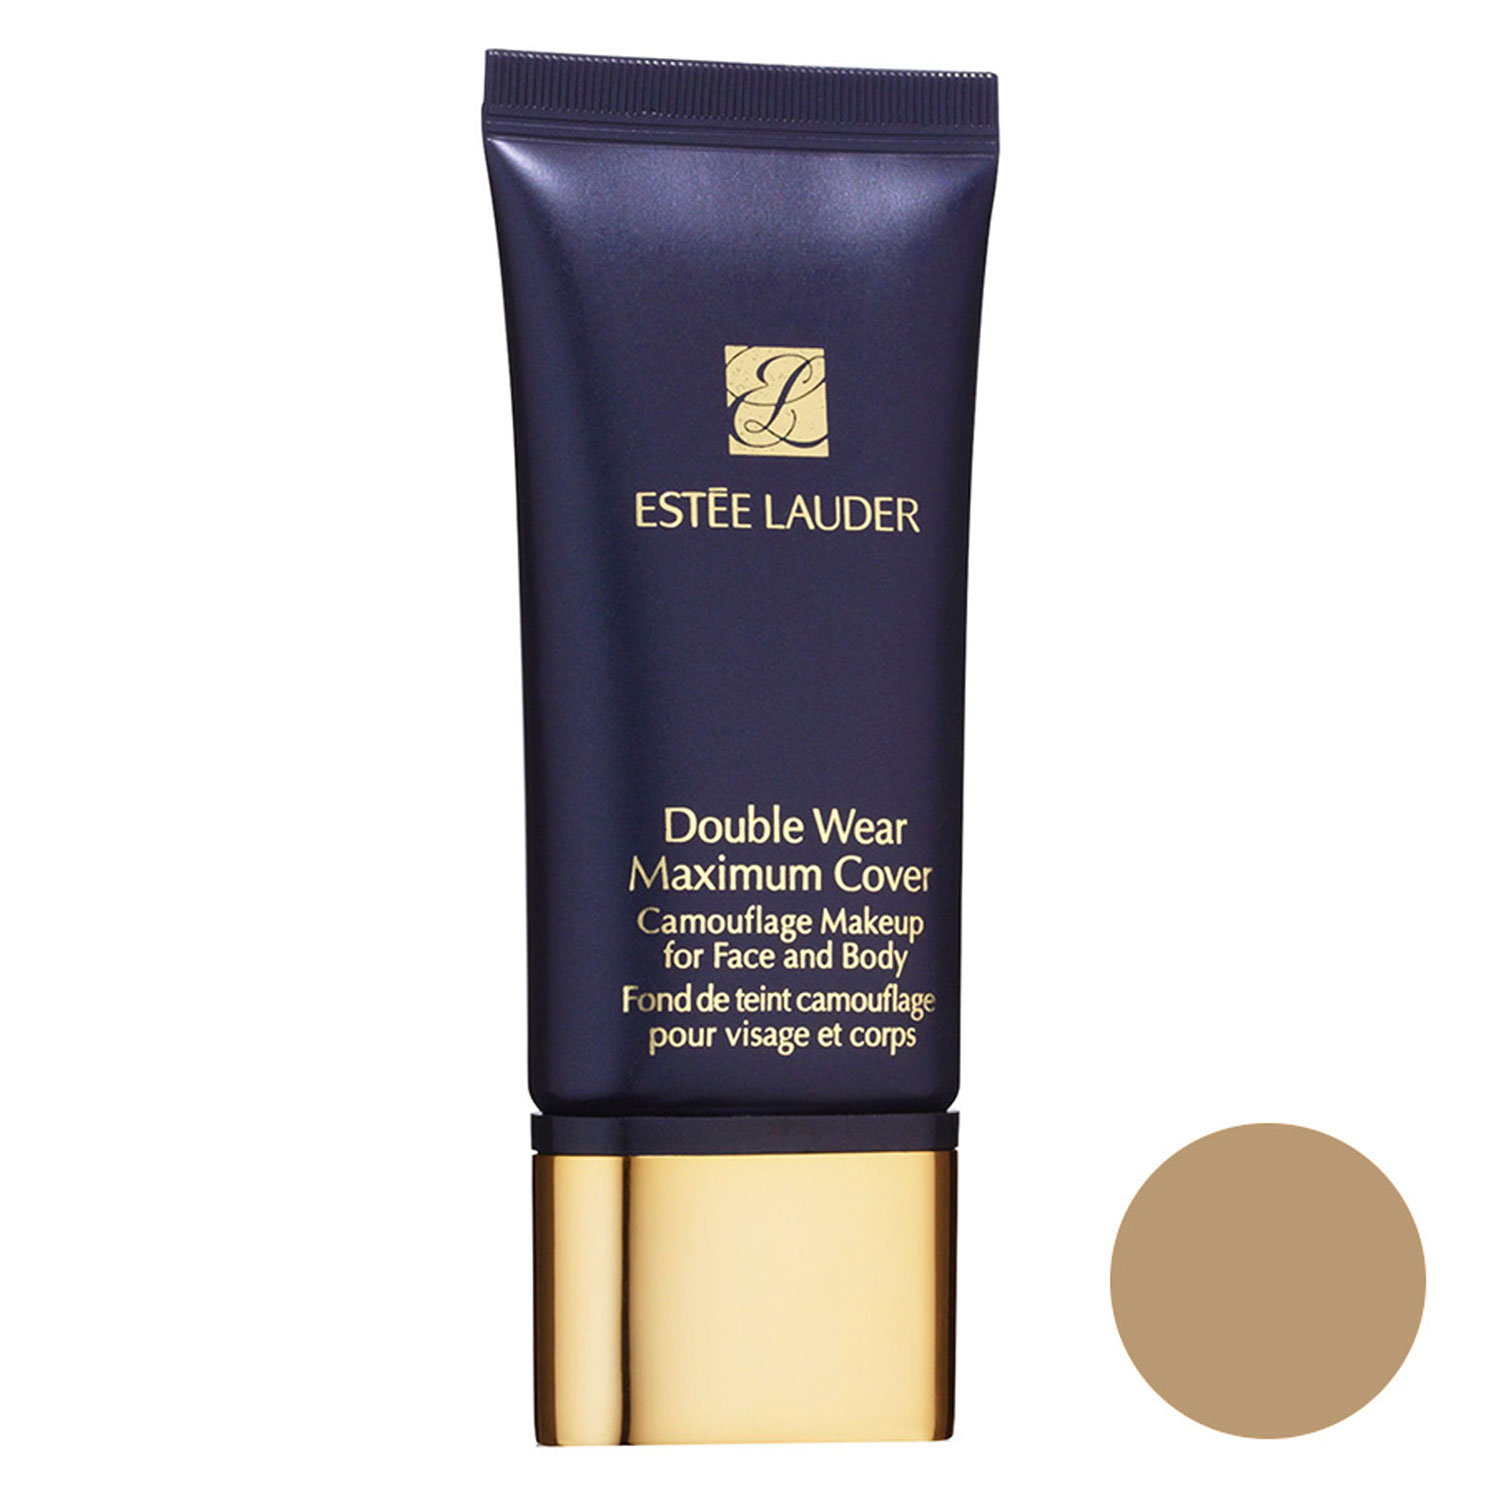 Double Wear - Maximum Cover Camouflage Makeup SPF15 Desert Beige 2N1